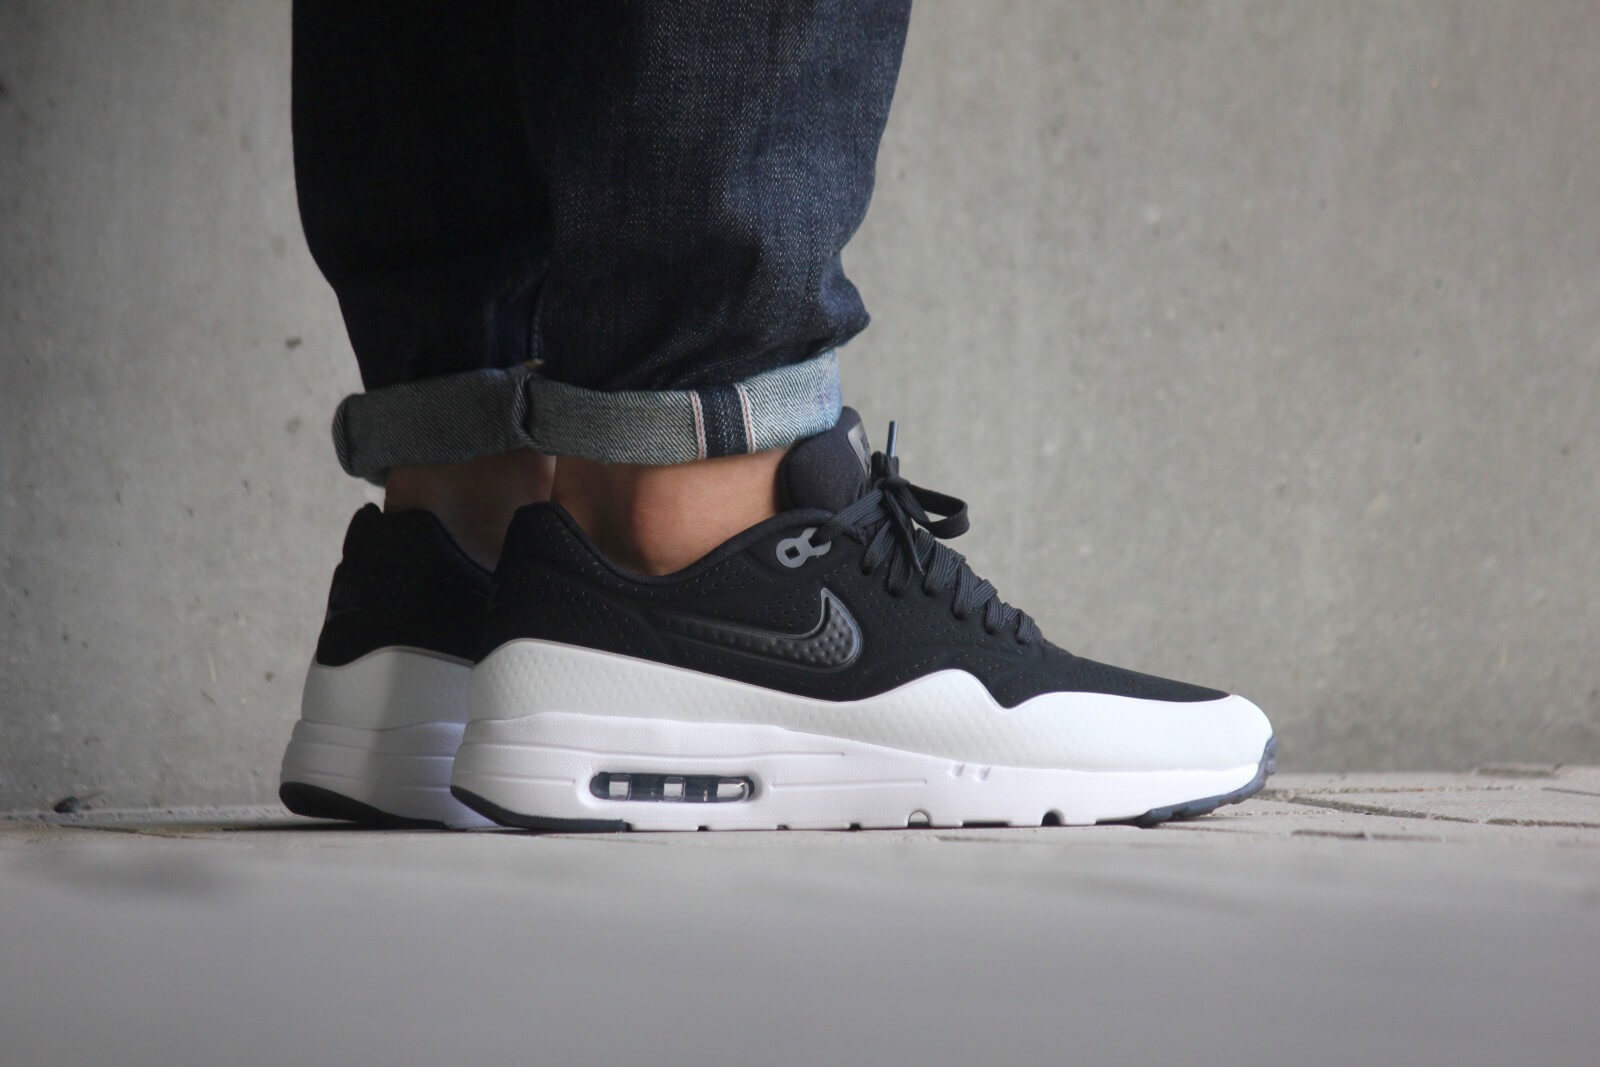 Nike Air Max 1 Ultra Moire BlackBlack White 705297 011